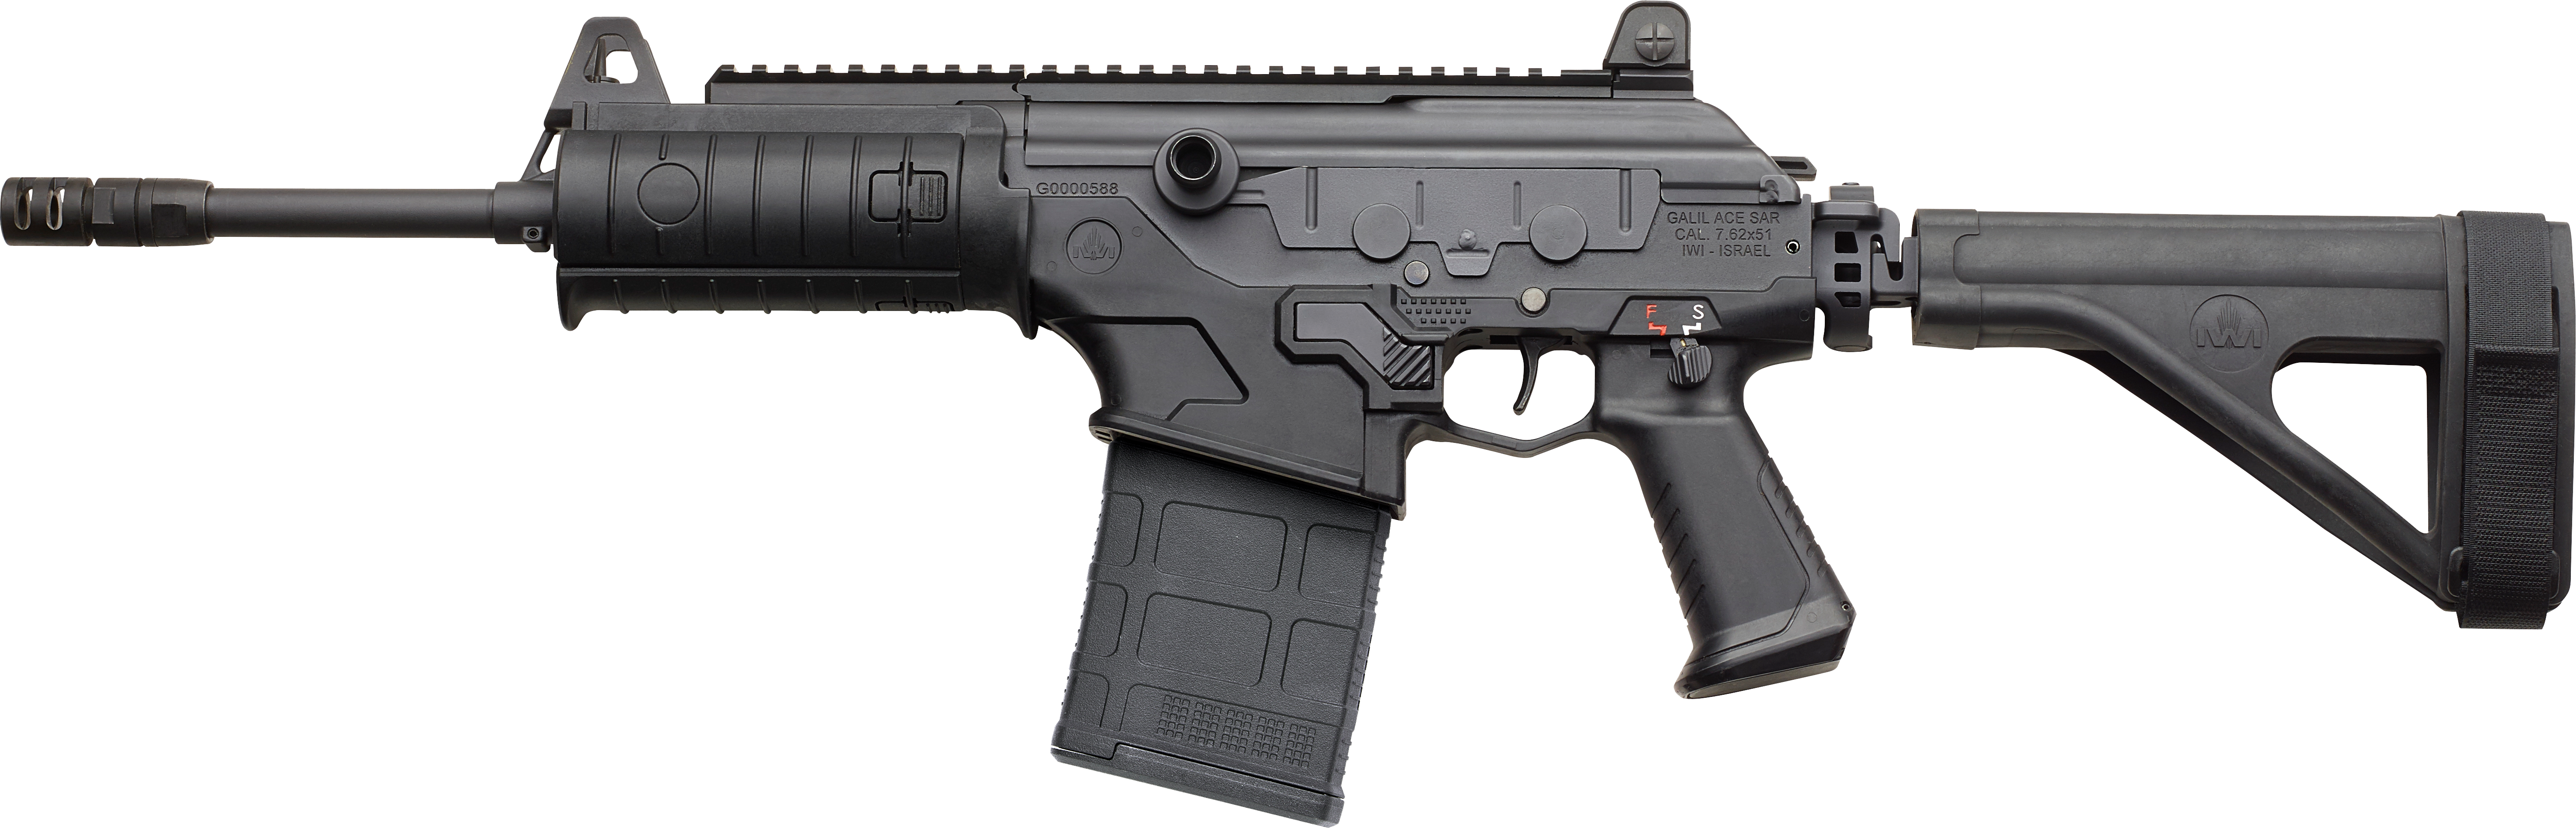 Galil ACE Pistol – 7 62 NATO (7 62x51mm) with Stabilizing